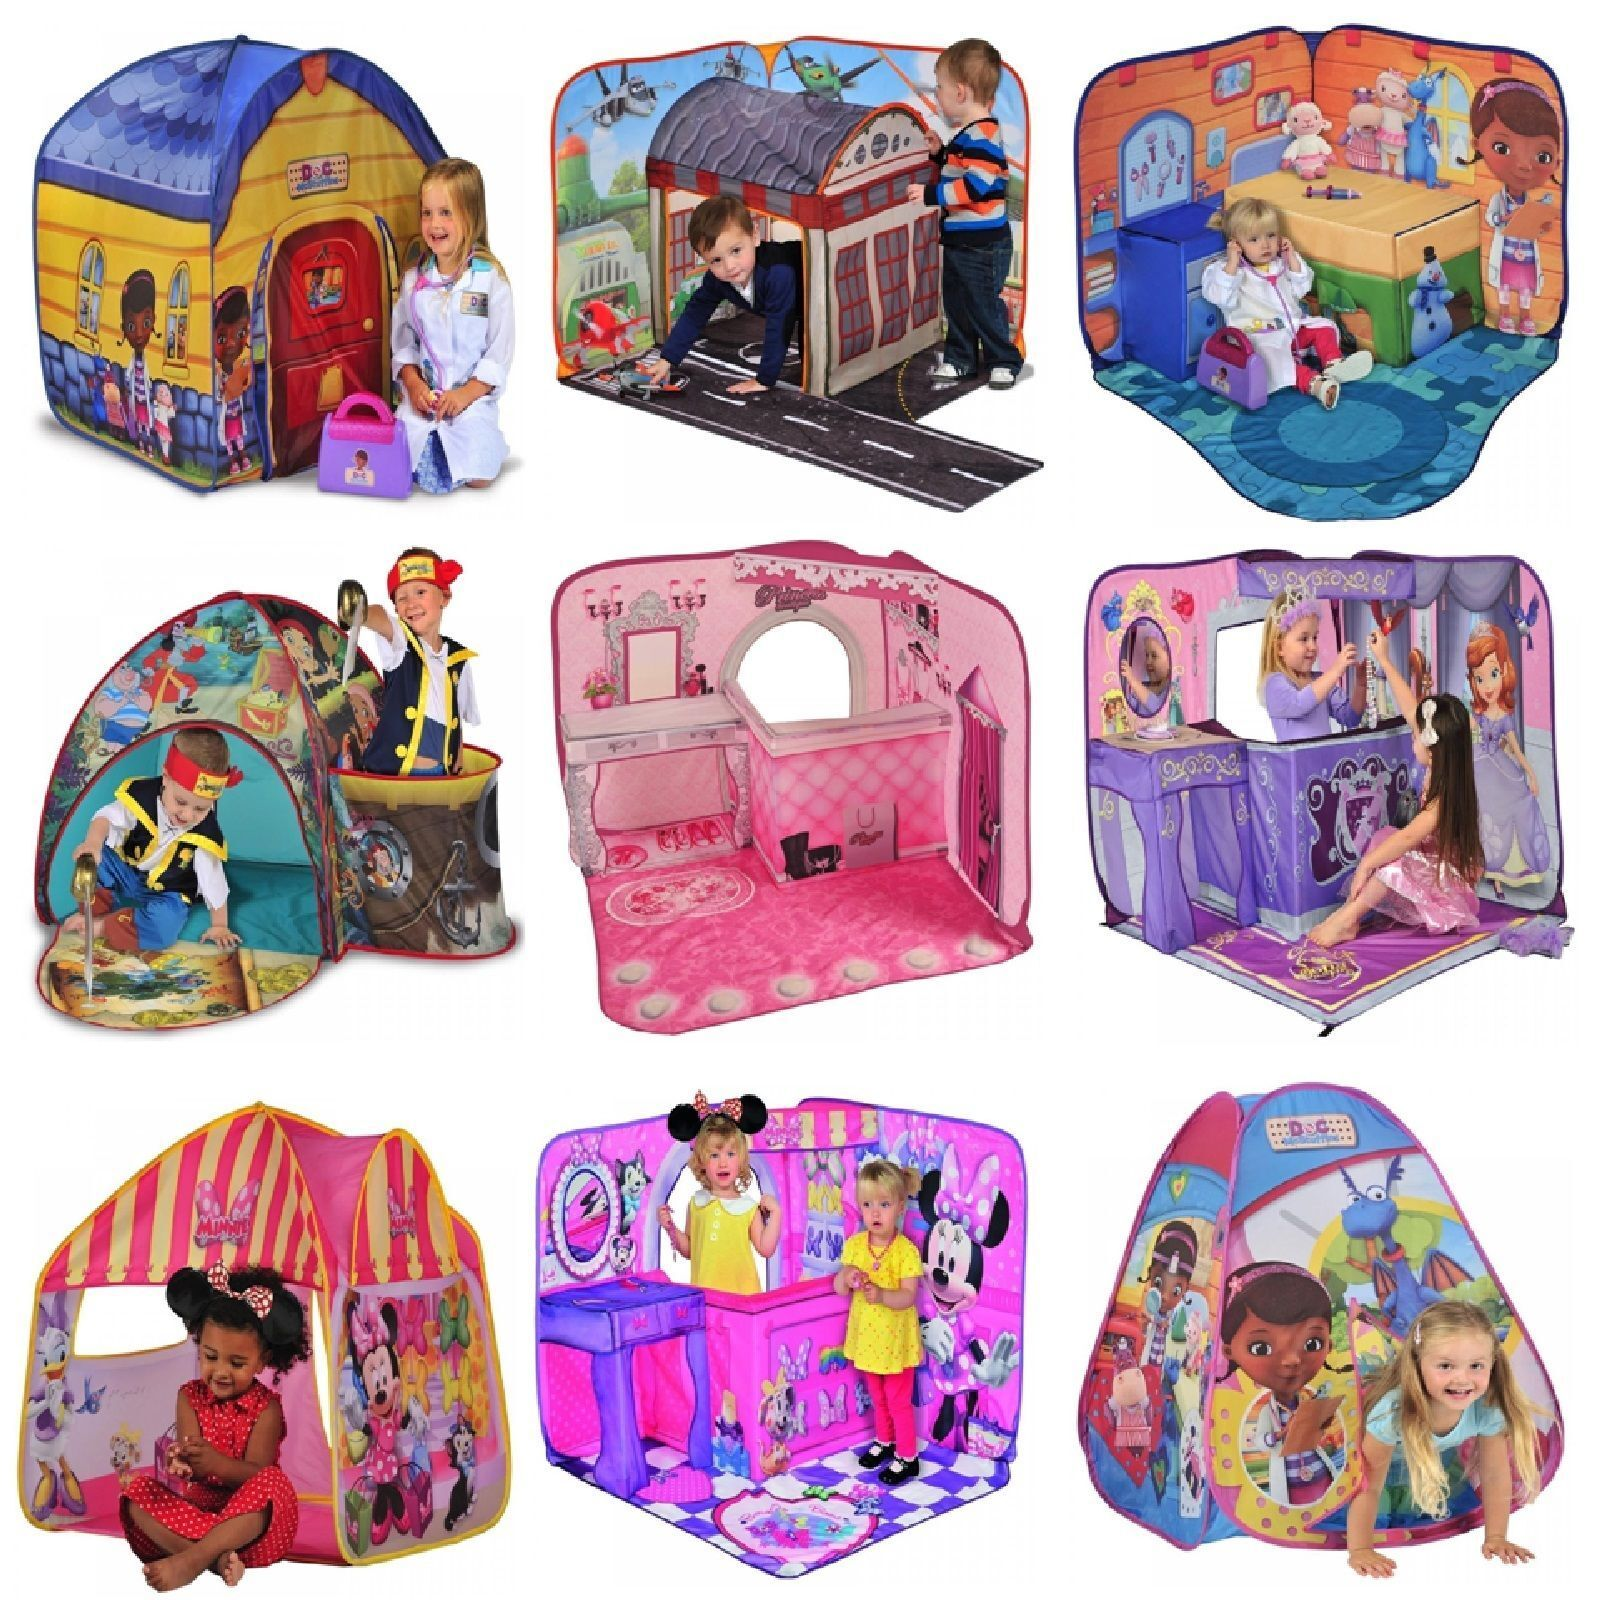 Disney Cartoon Character Pop Up Play Tent Or 3d Play Scape